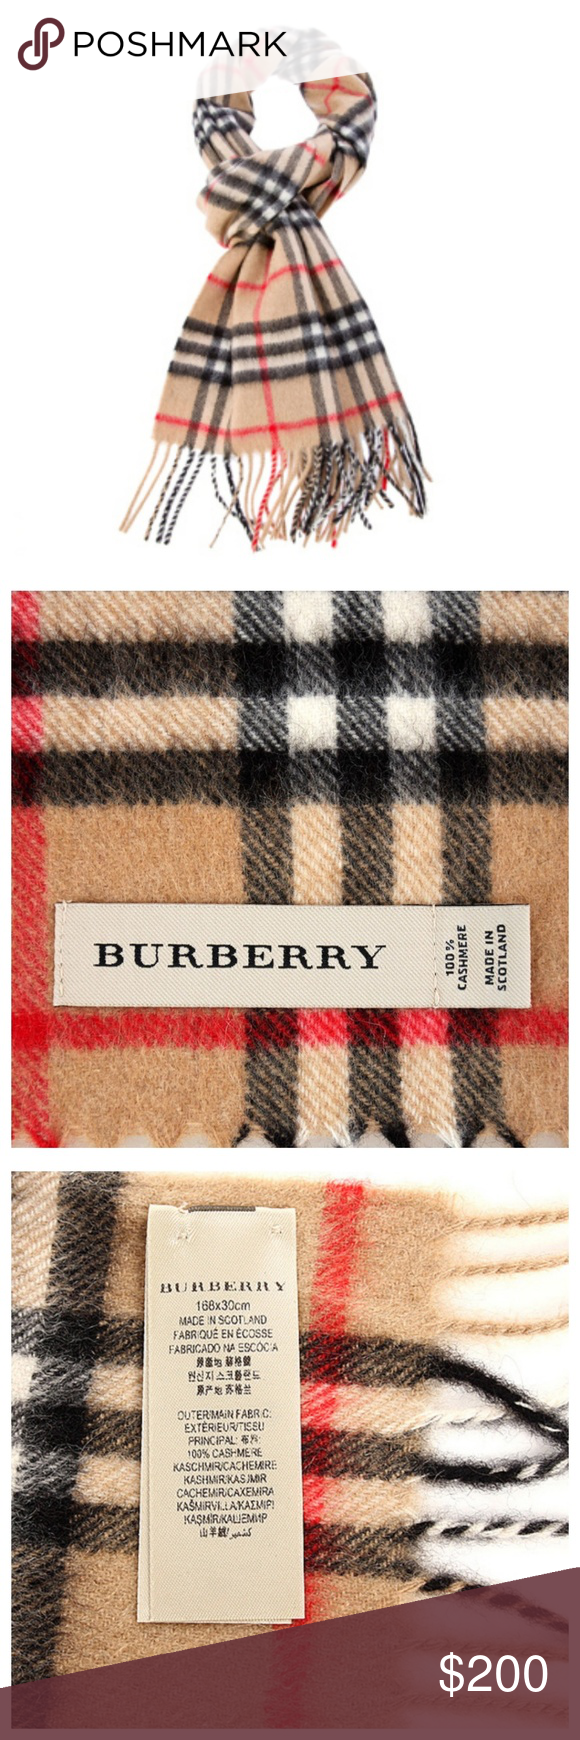 Burberry Scarf Camel Check A Beautifully Soft Scarf Suitable For